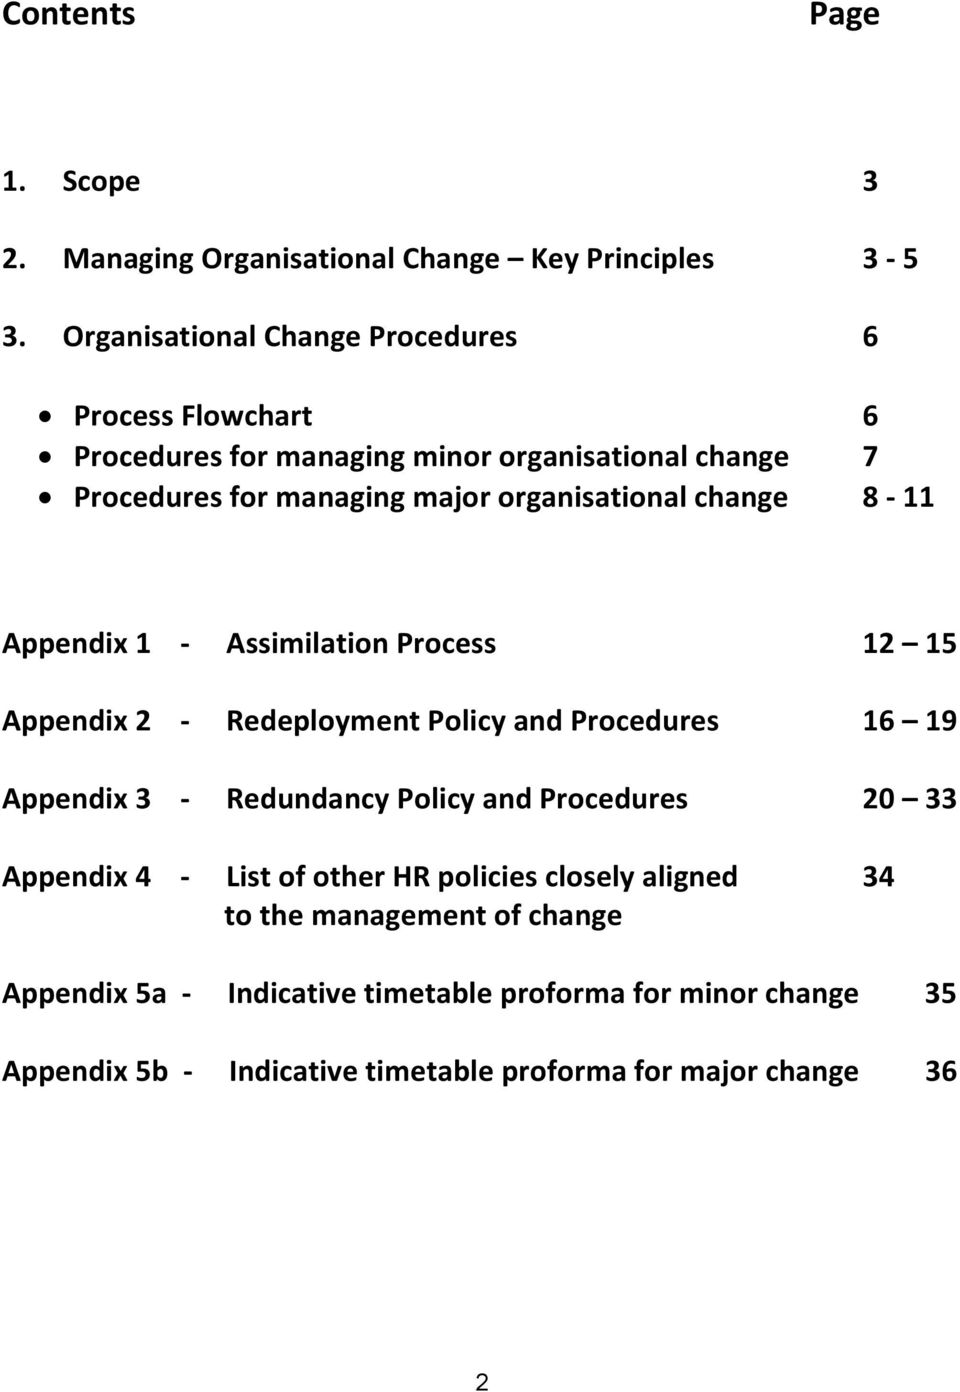 organisational change 8-11 Appendix 1 - Assimilation Process 12 15 Appendix 2 - Redeployment Policy and Procedures 16 19 Appendix 3 - Redundancy Policy